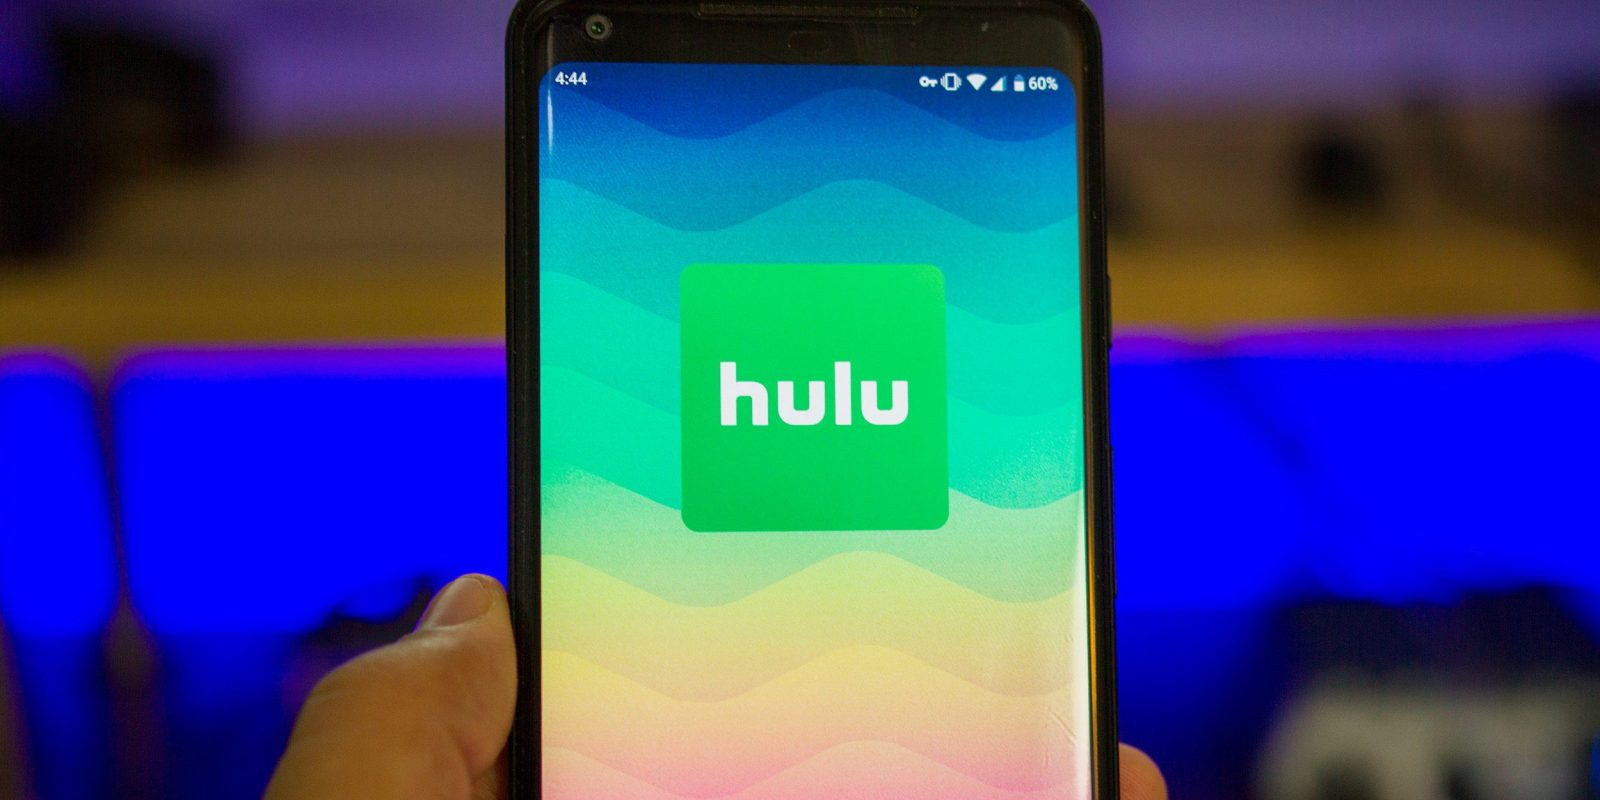 Hulu brings back 4K streaming, works on Chromecast Ultra